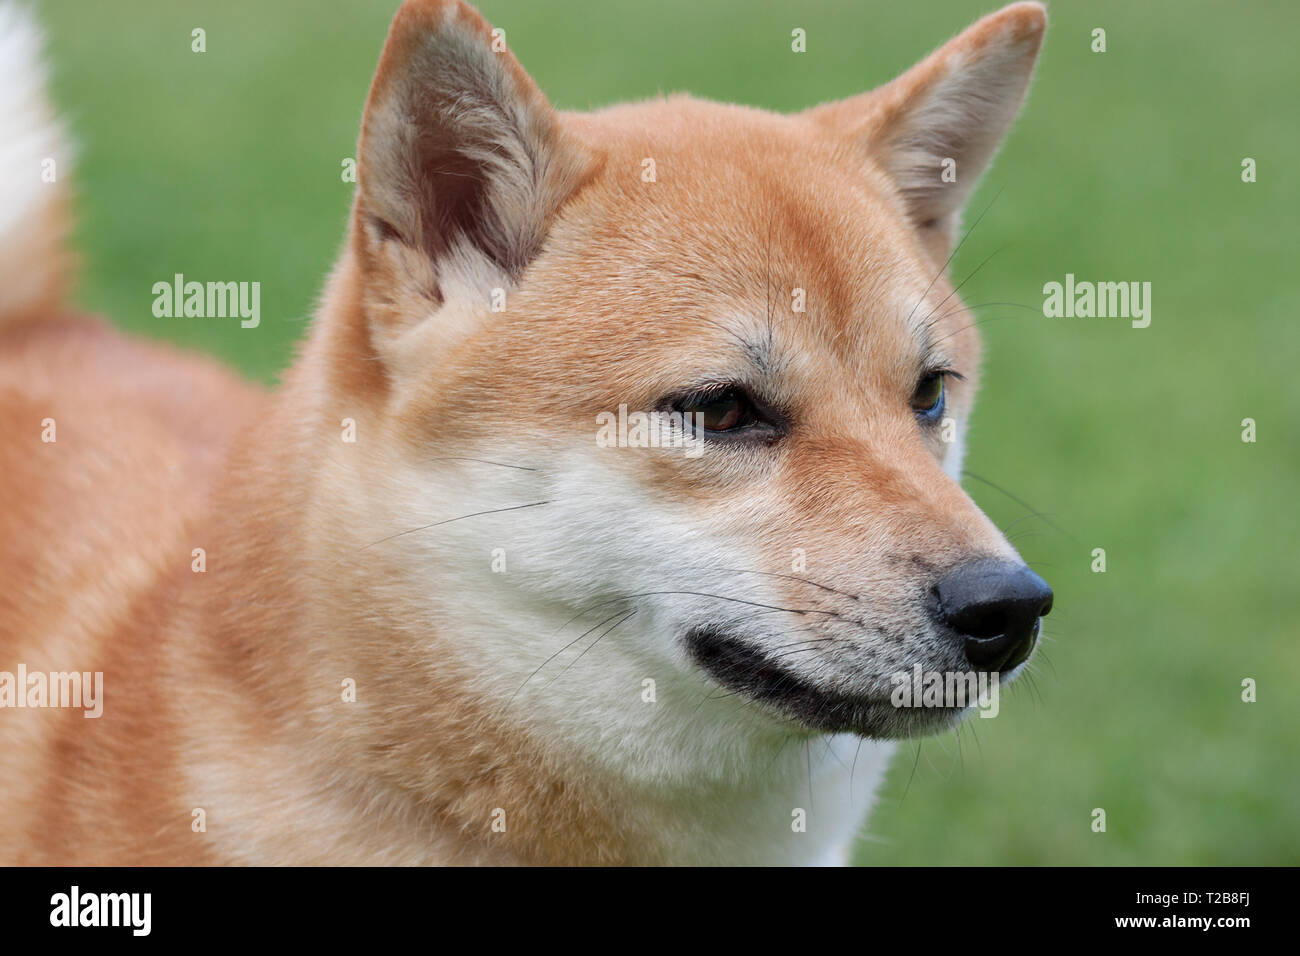 Cute red shiba inu close up. Pet animals. Purebred dog. - Stock Image